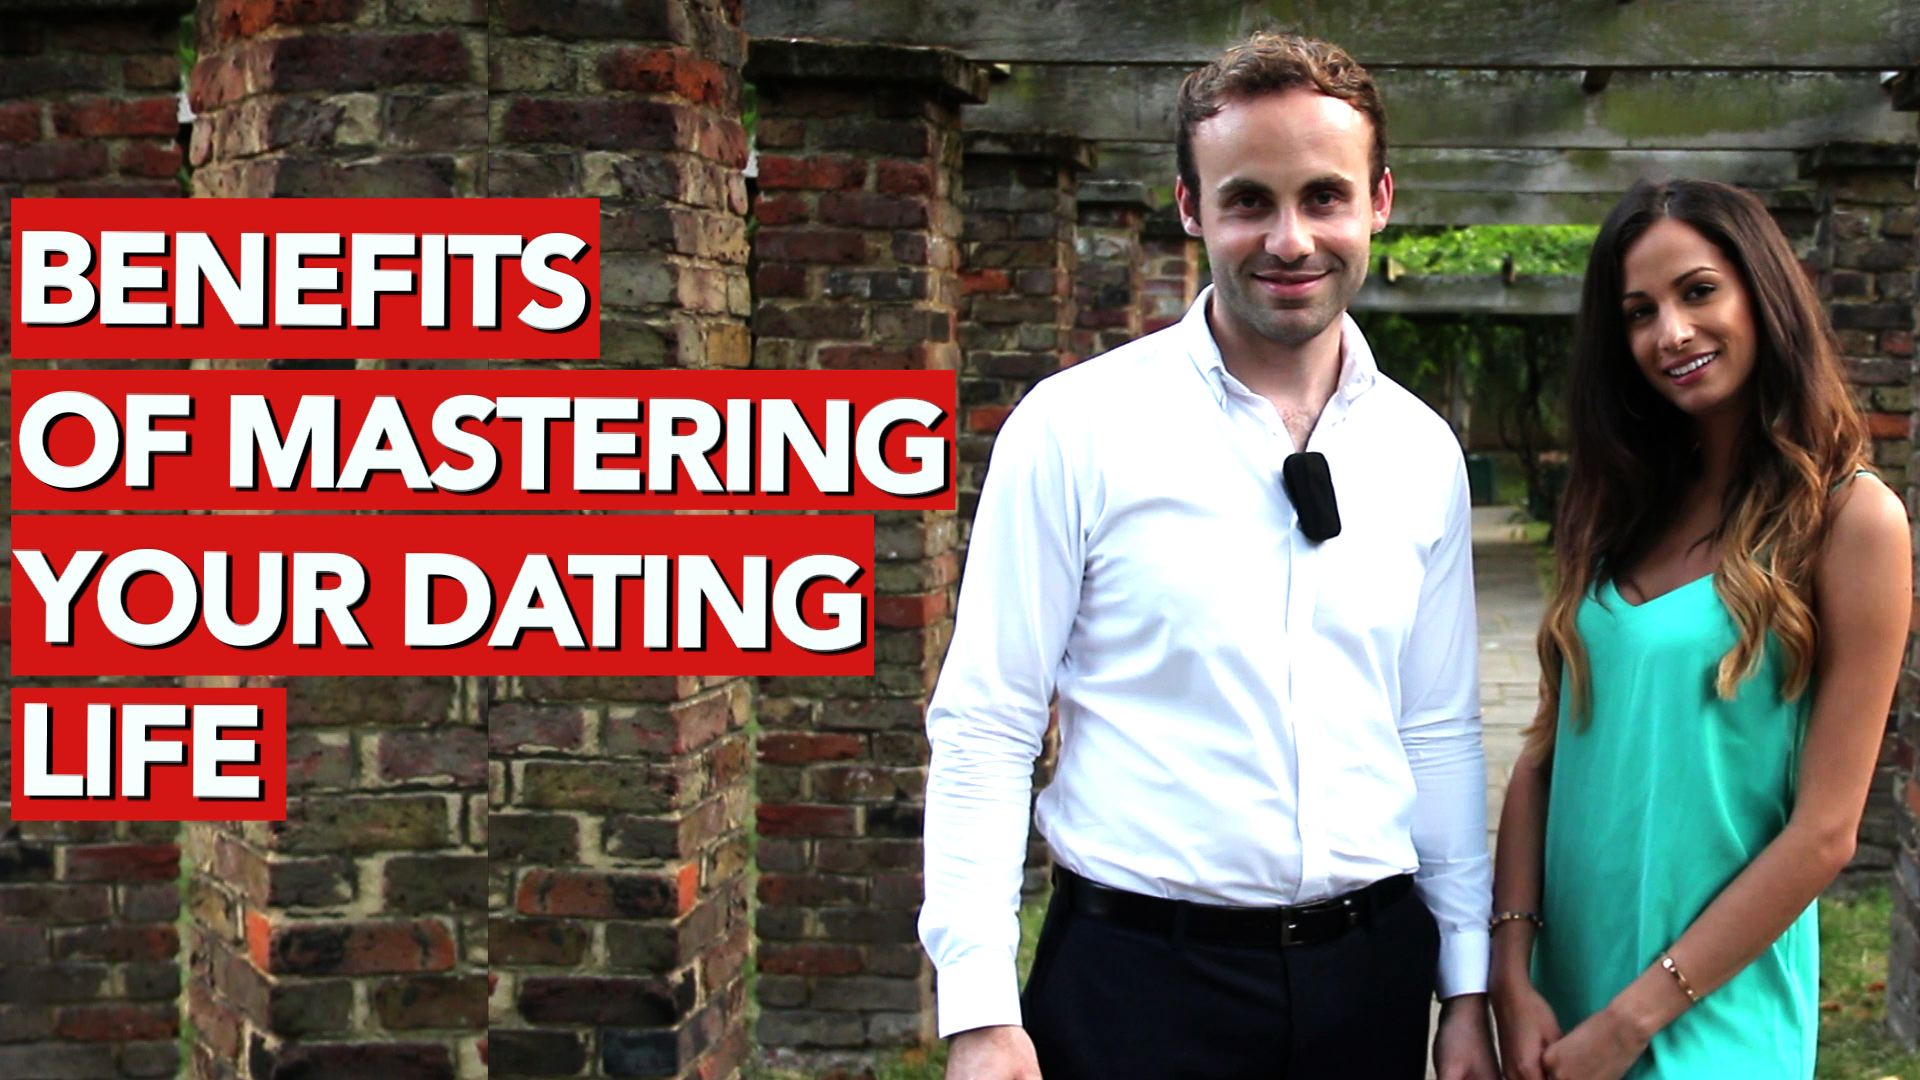 Benefits of mastering your dating life